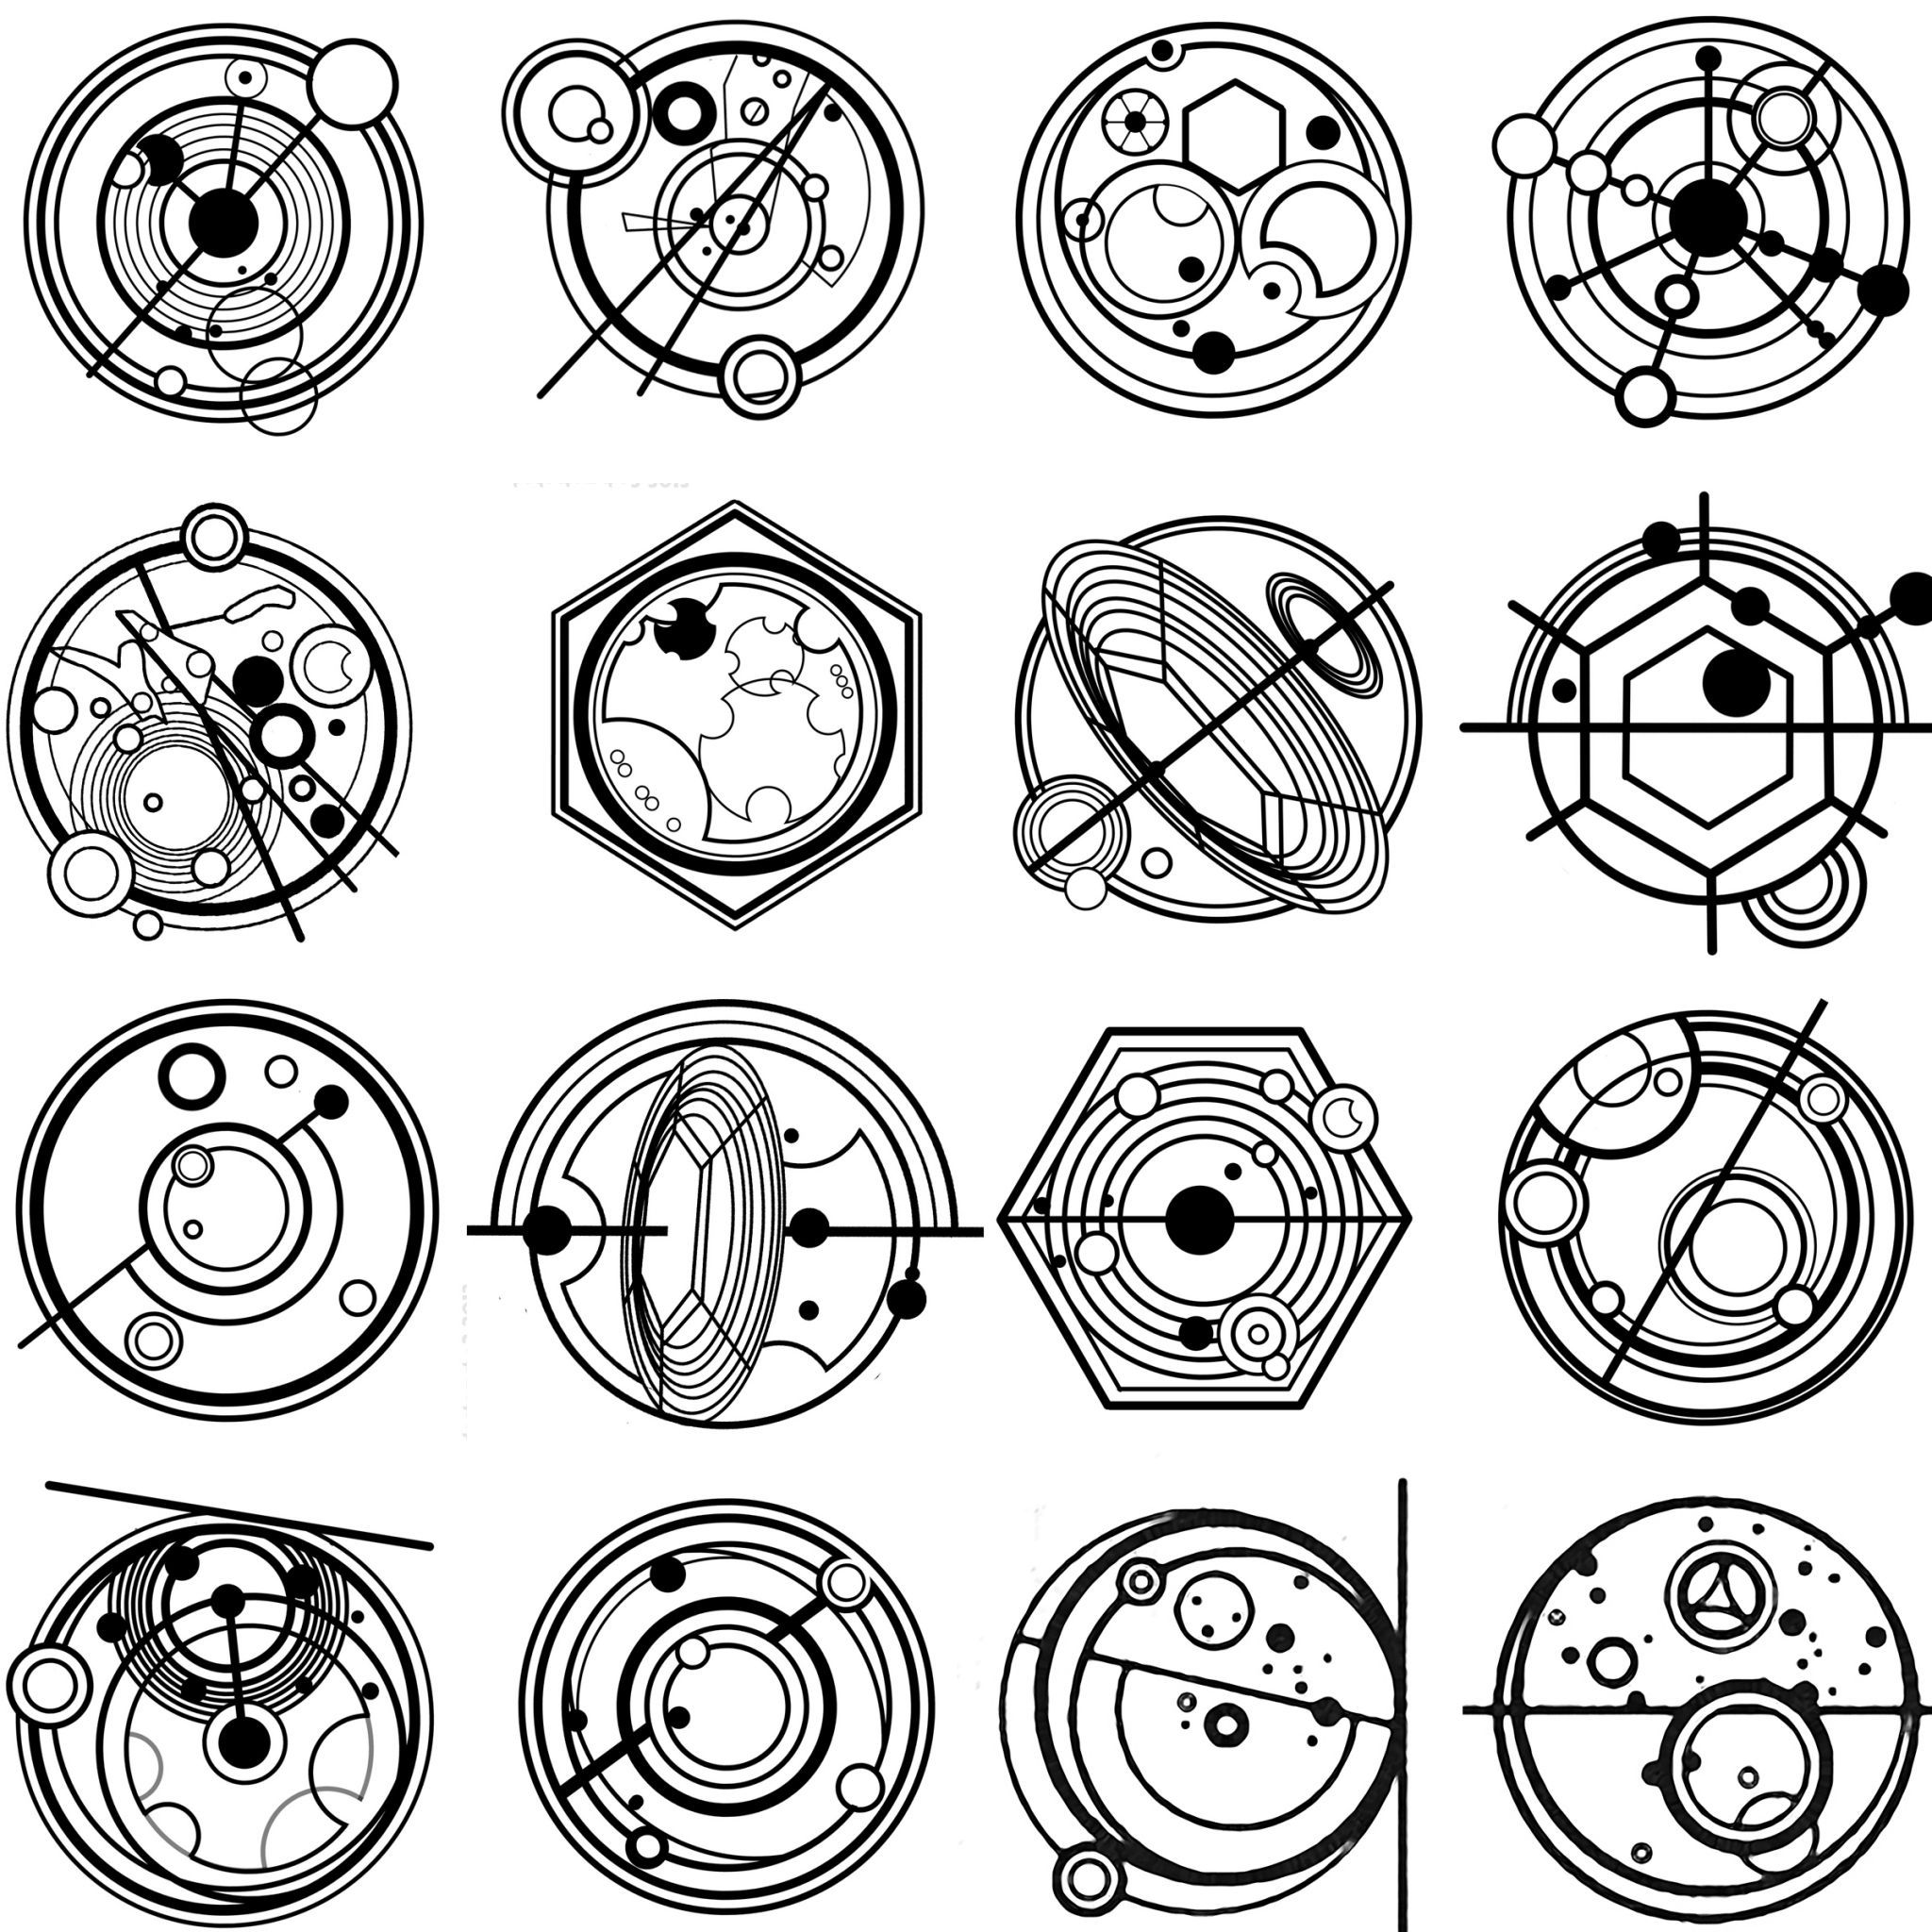 More Gallifreyan Writing From The Moment Day Of The